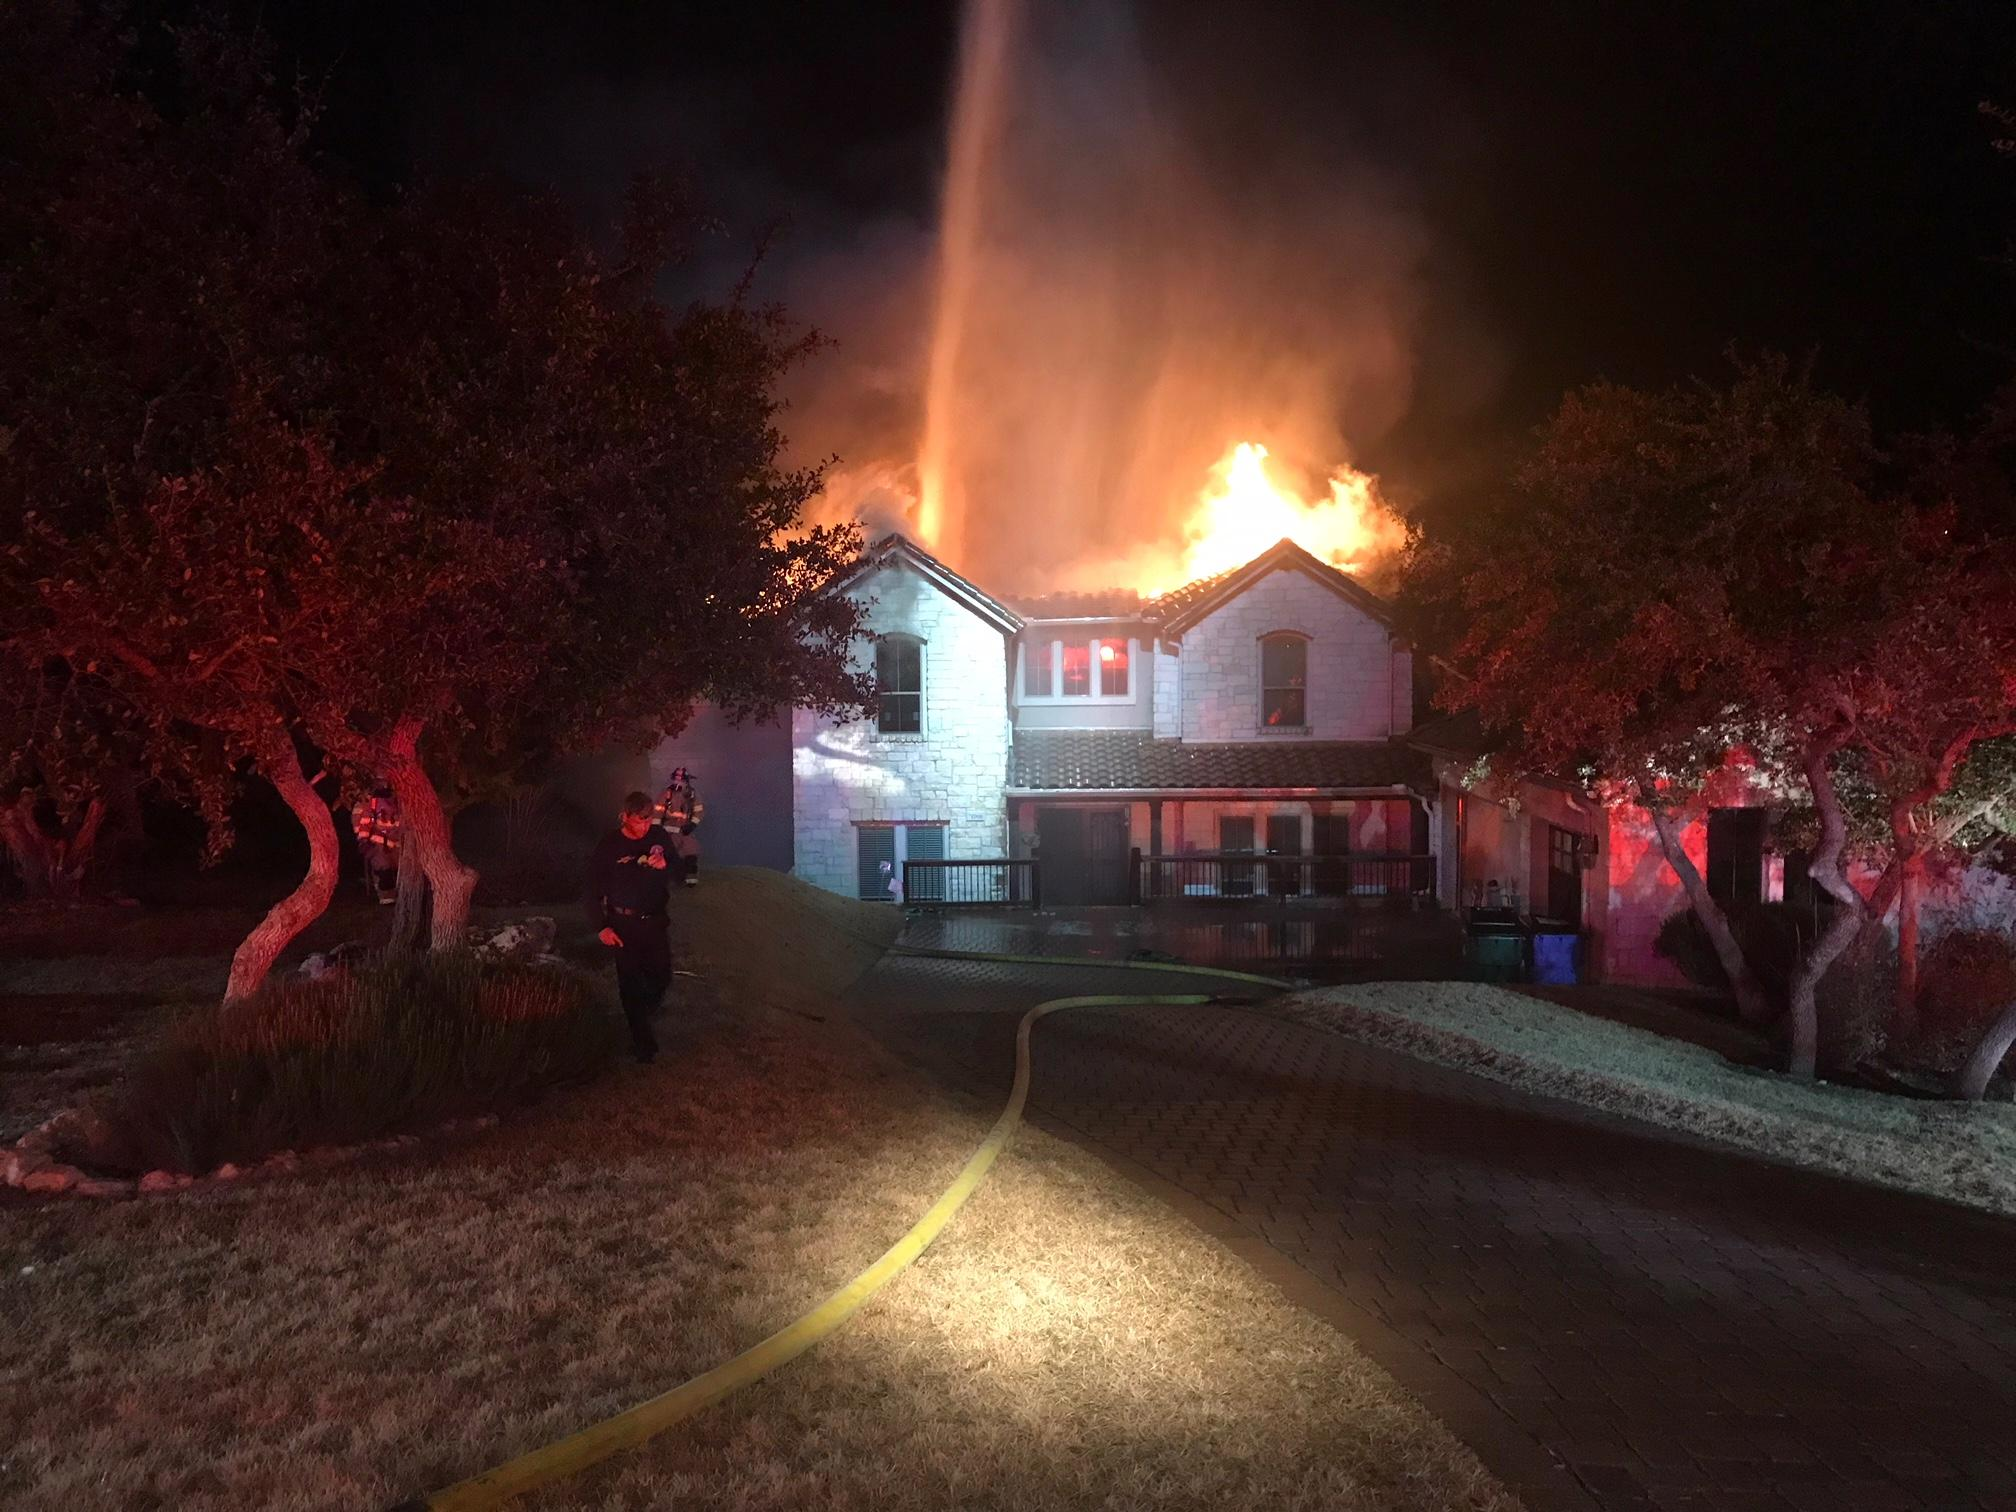 TravCo ESD1 battled a house fire in the Hollows late Friday night on the 17000 block of Regatta View Dr. The home was engulfed in flames when they arrived. One pet was killed in the fire. (PHOTOS/VIDEO: Chief Donnie Norman, TravCo ESD1)